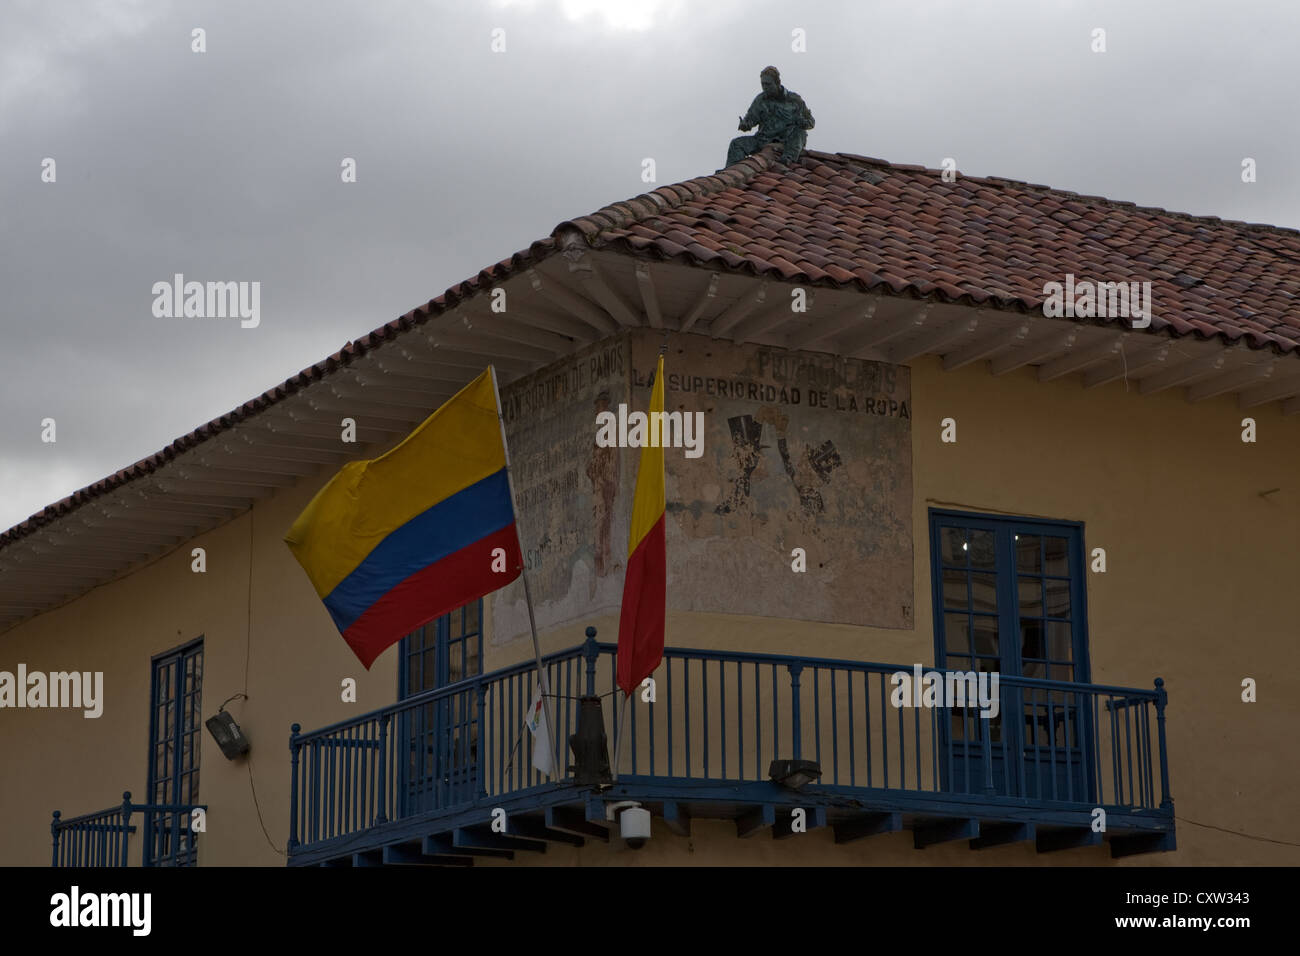 Papier mache creation on top of tourism information Shop Bogota Colombia - Stock Image